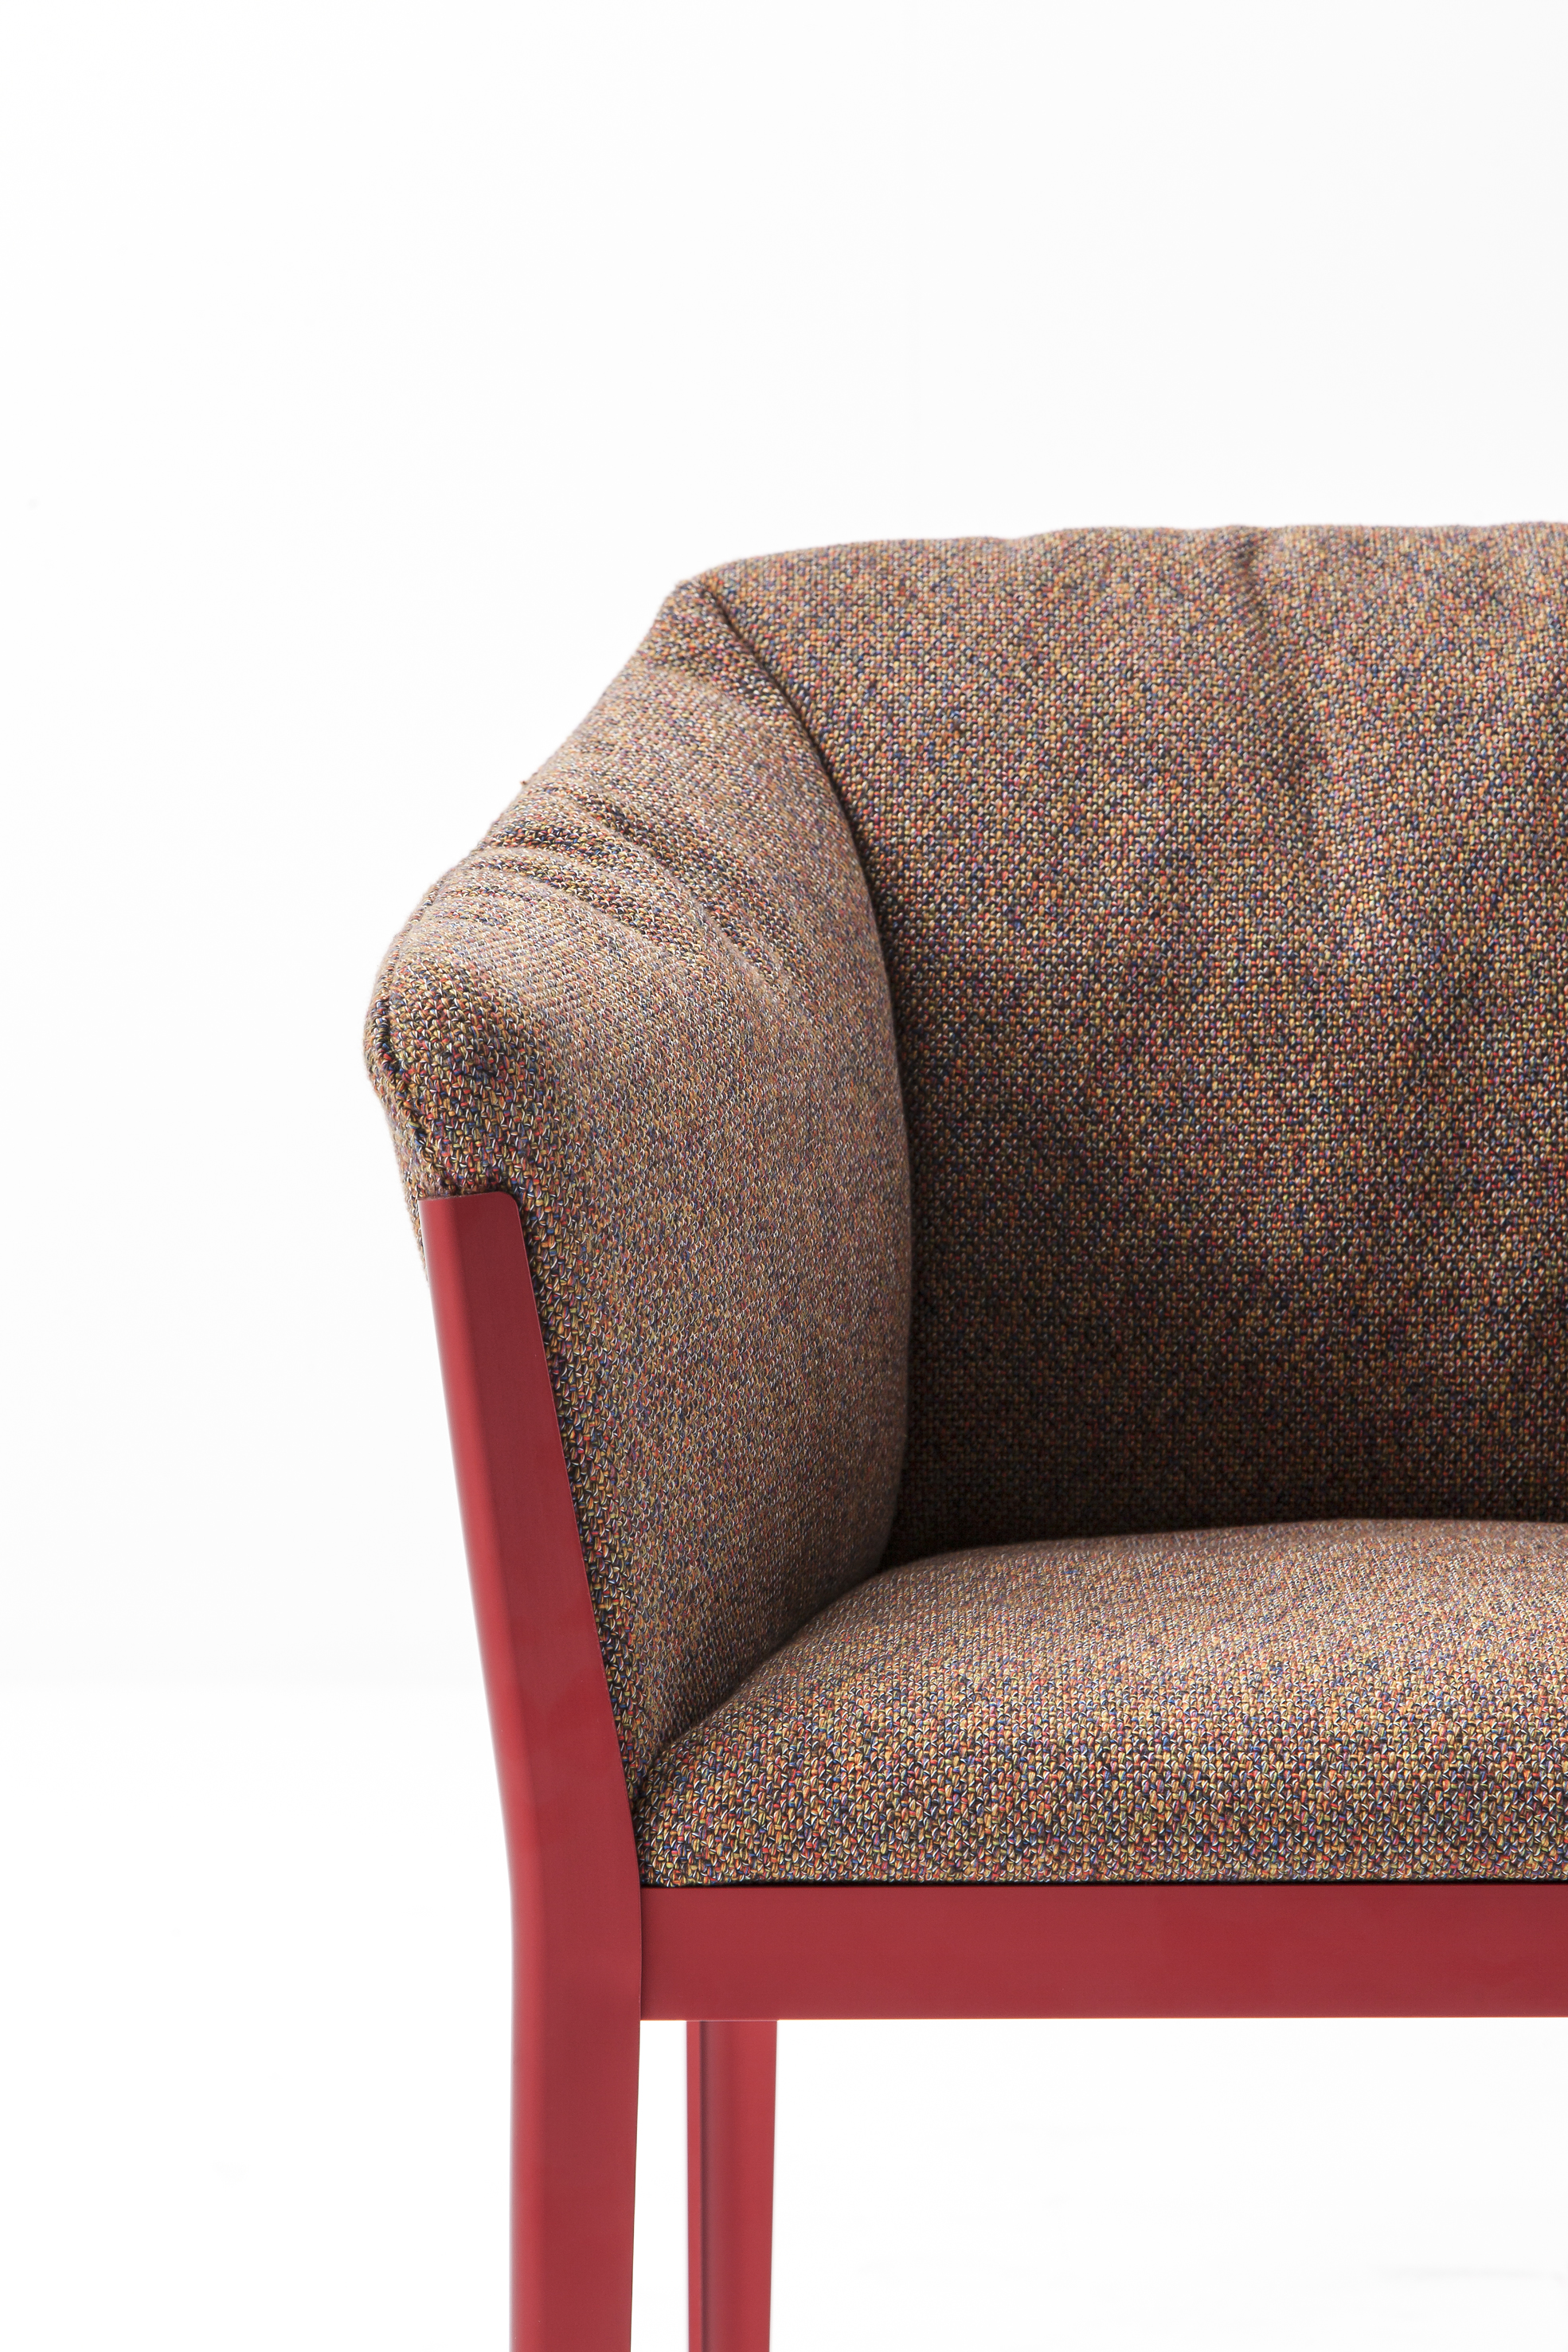 Cotone by the Bouroullec brothers for Cassina.